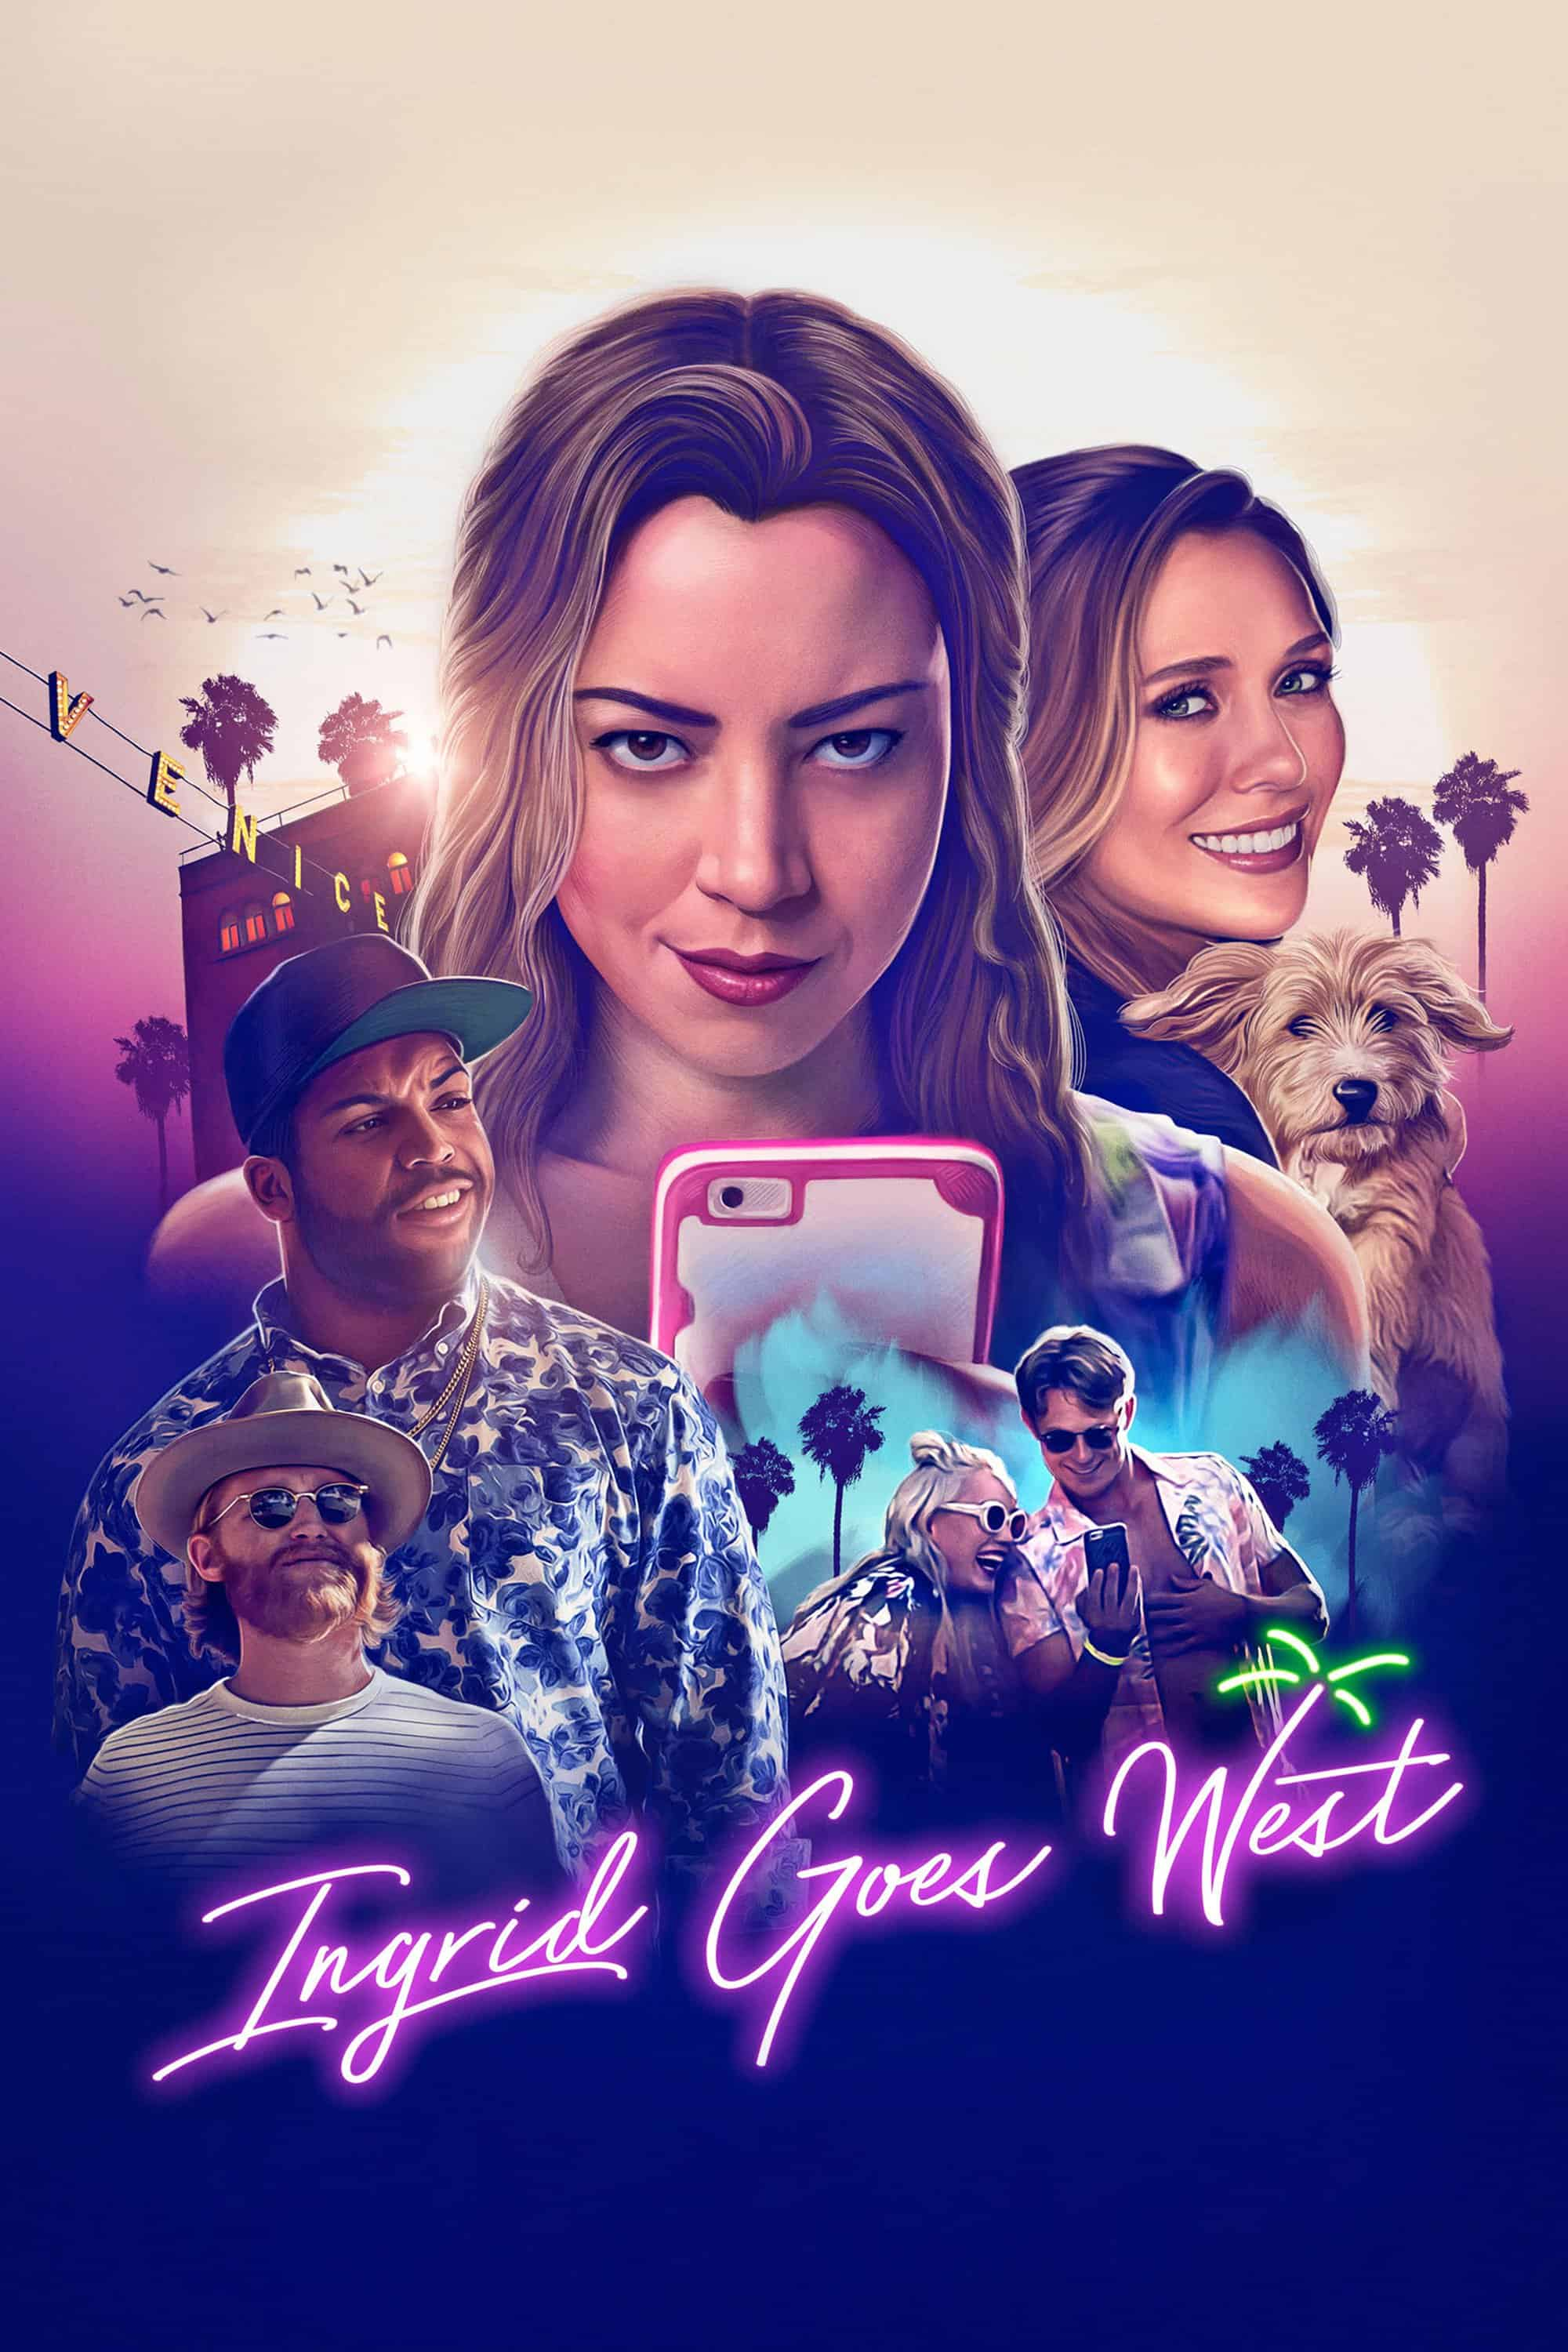 Ingrid Goes West, 2017